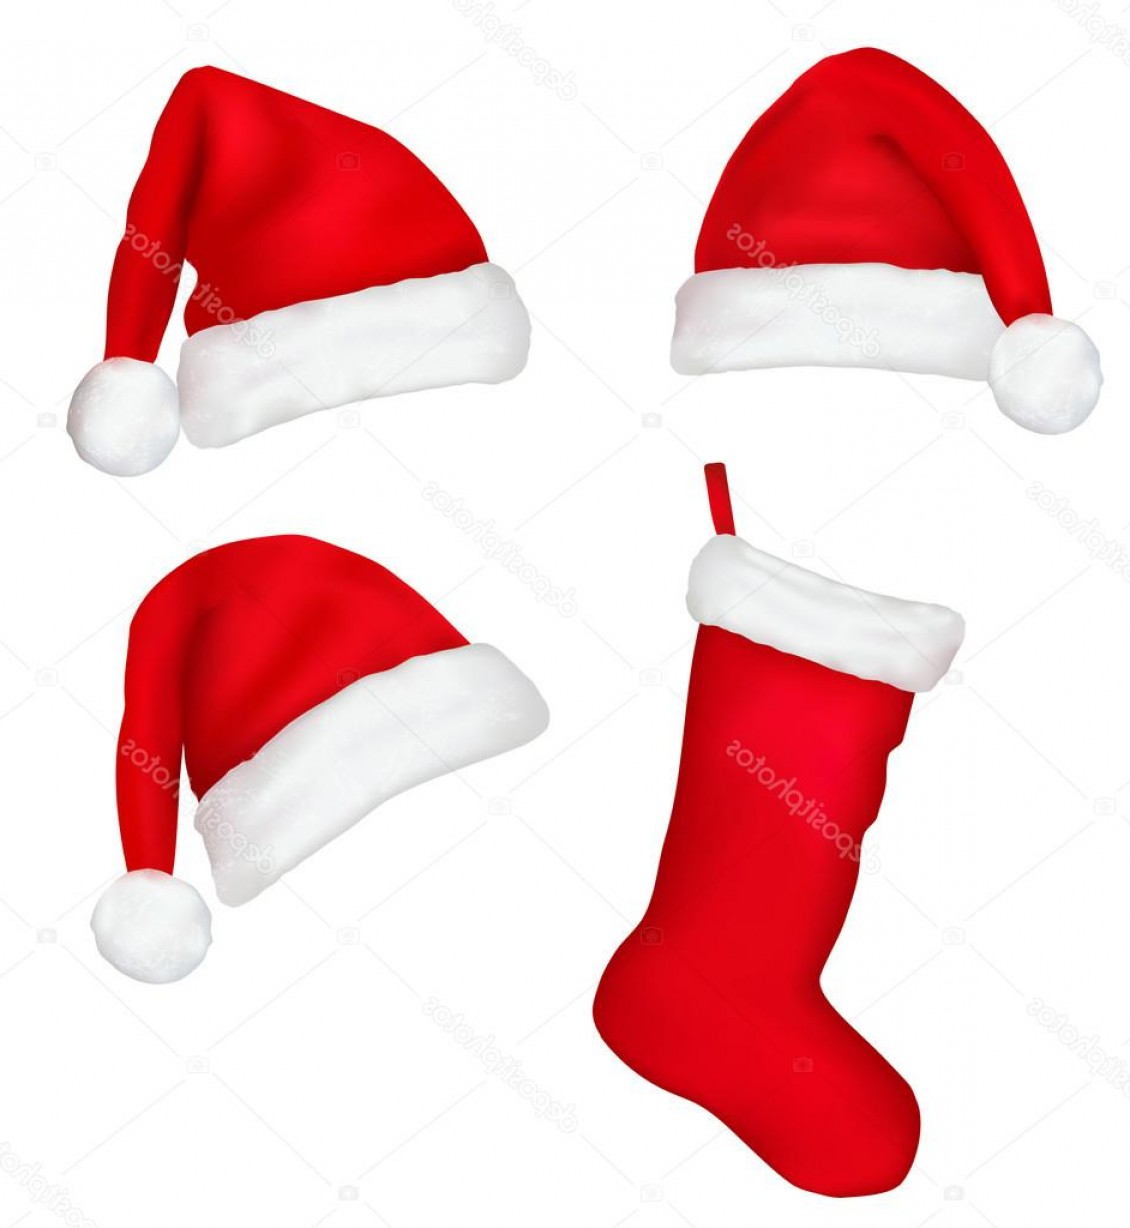 Stocking Hat Vector: Fanciful Stock Illustration Three Red Santa Hats And